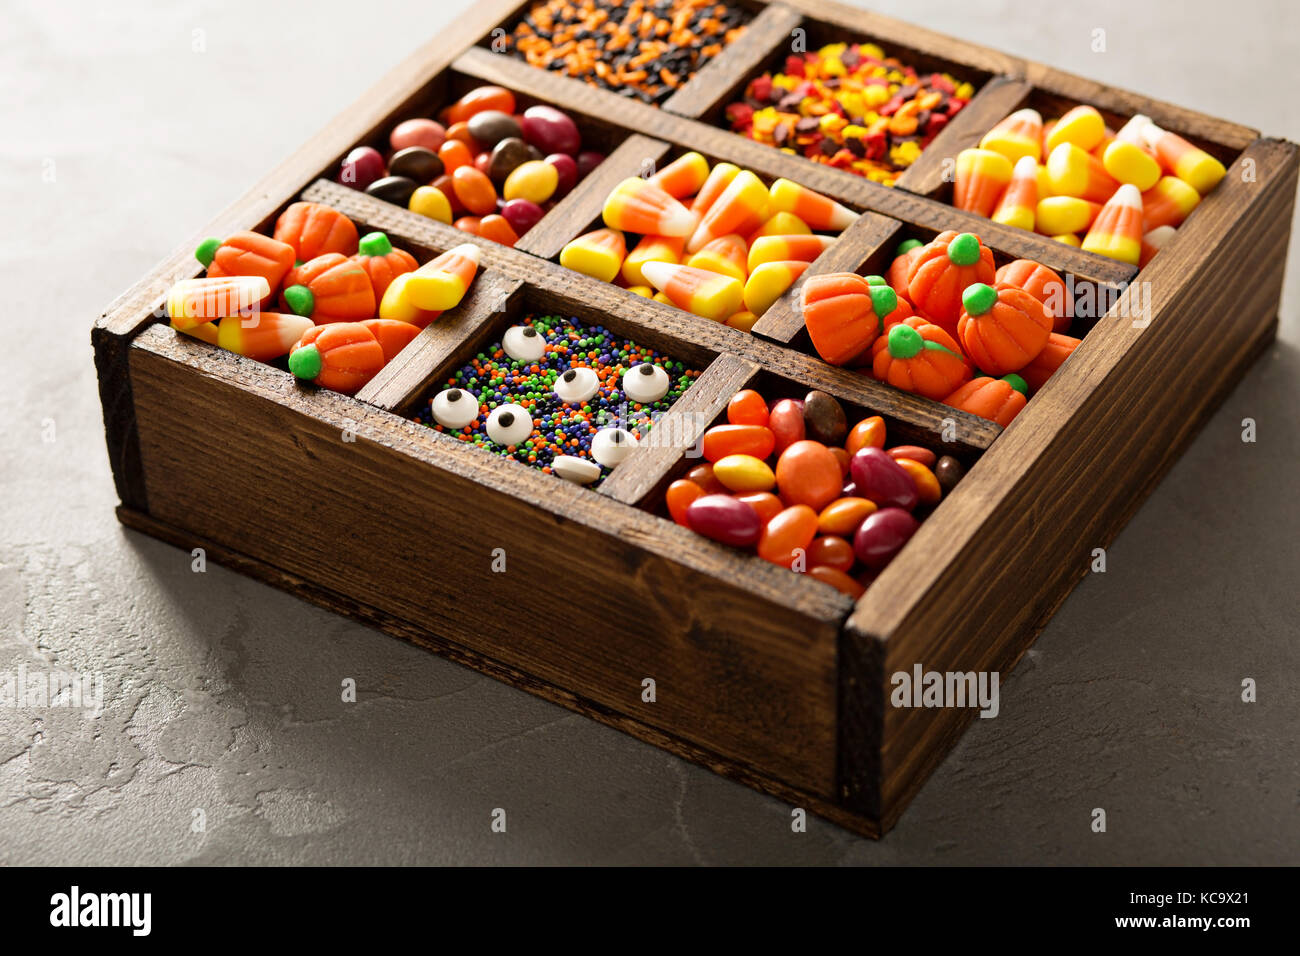 Halloween candy in a wooden box - Stock Image